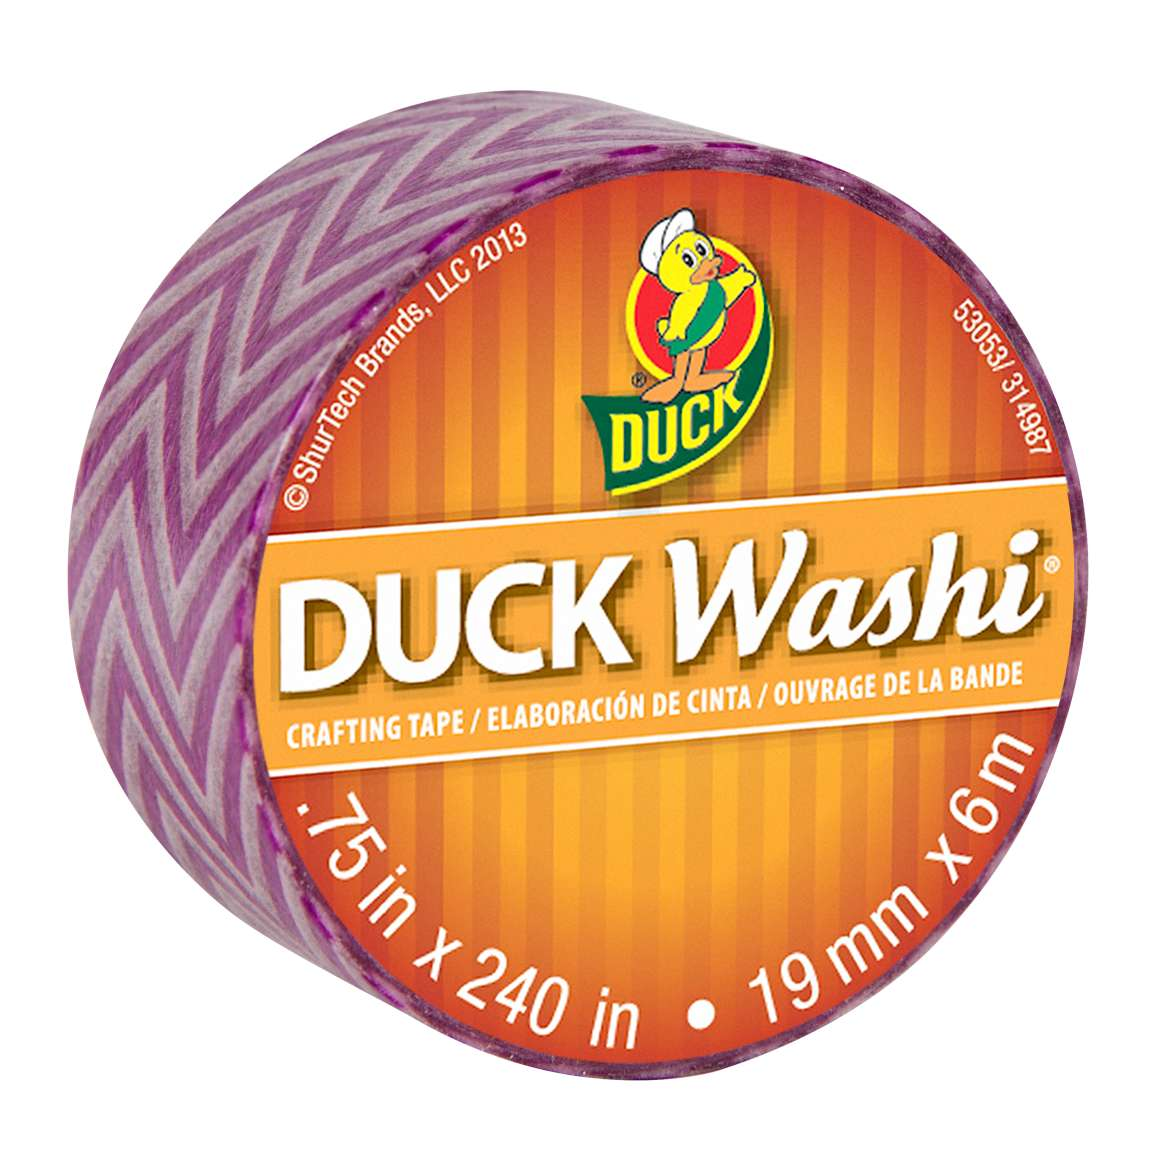 Duck Washi® Crafting Tape - Purple Chevron, .75 in. x 240 in. Image